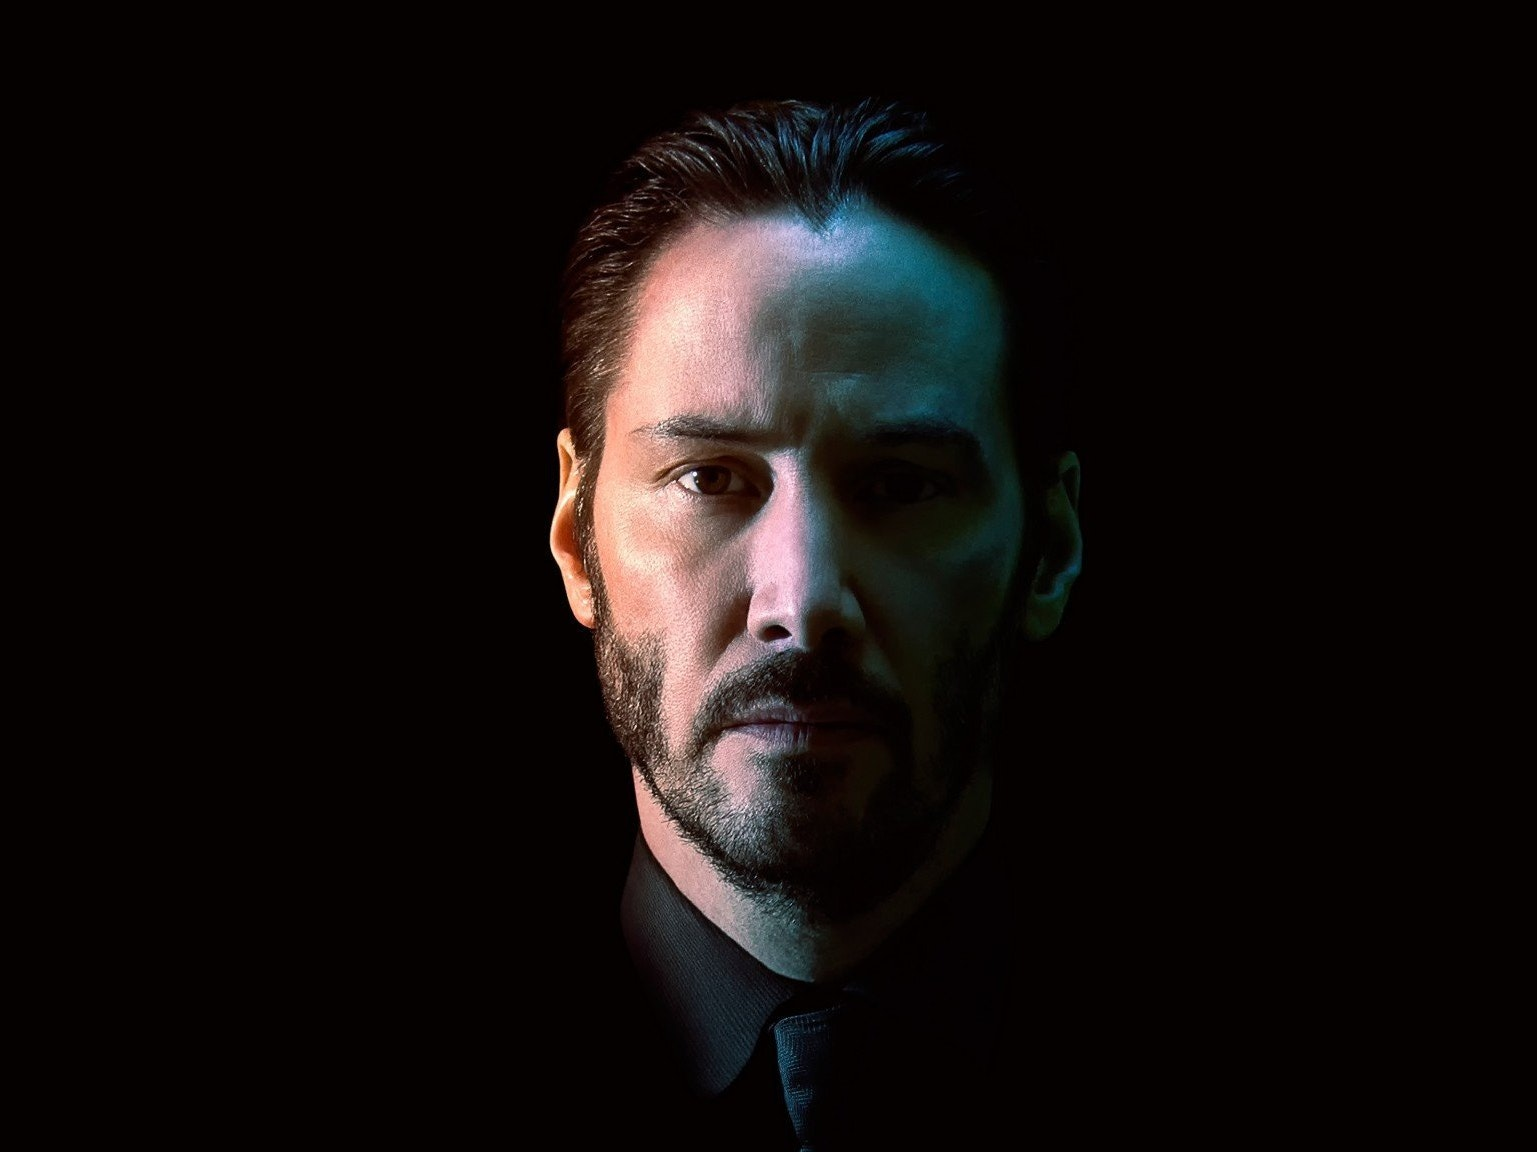 Keanu Reeves is Poised for a Sci-Fi Comeback With 'Replicas'